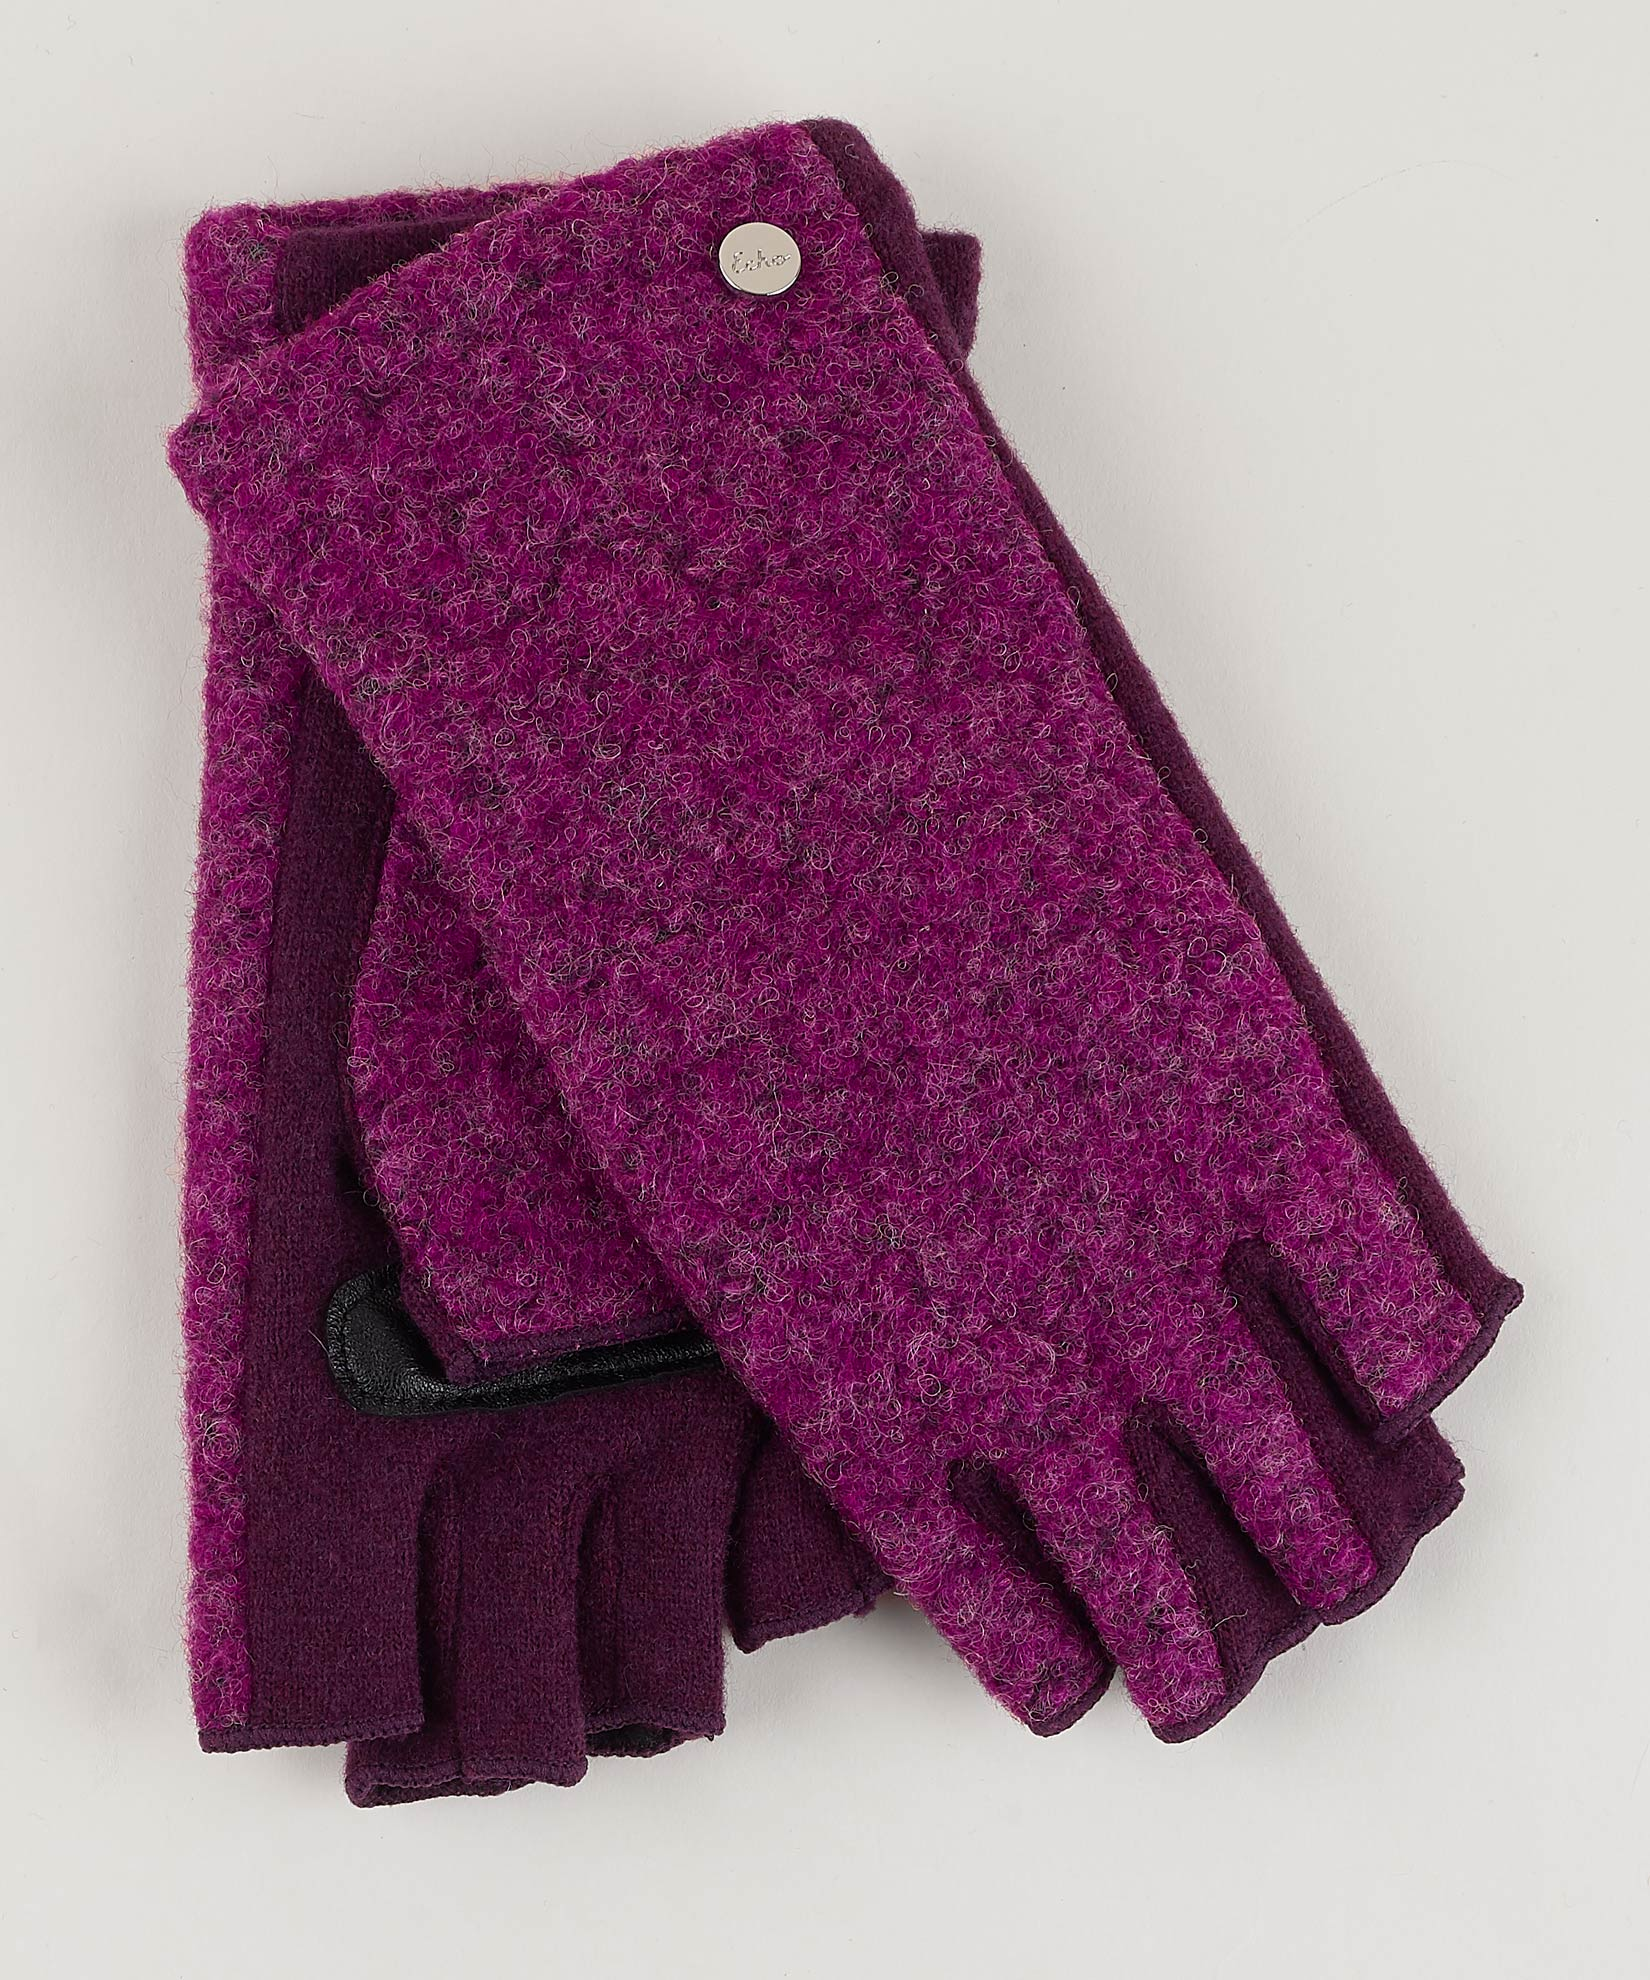 Pickled Beet - Boucle Fingerless Glove